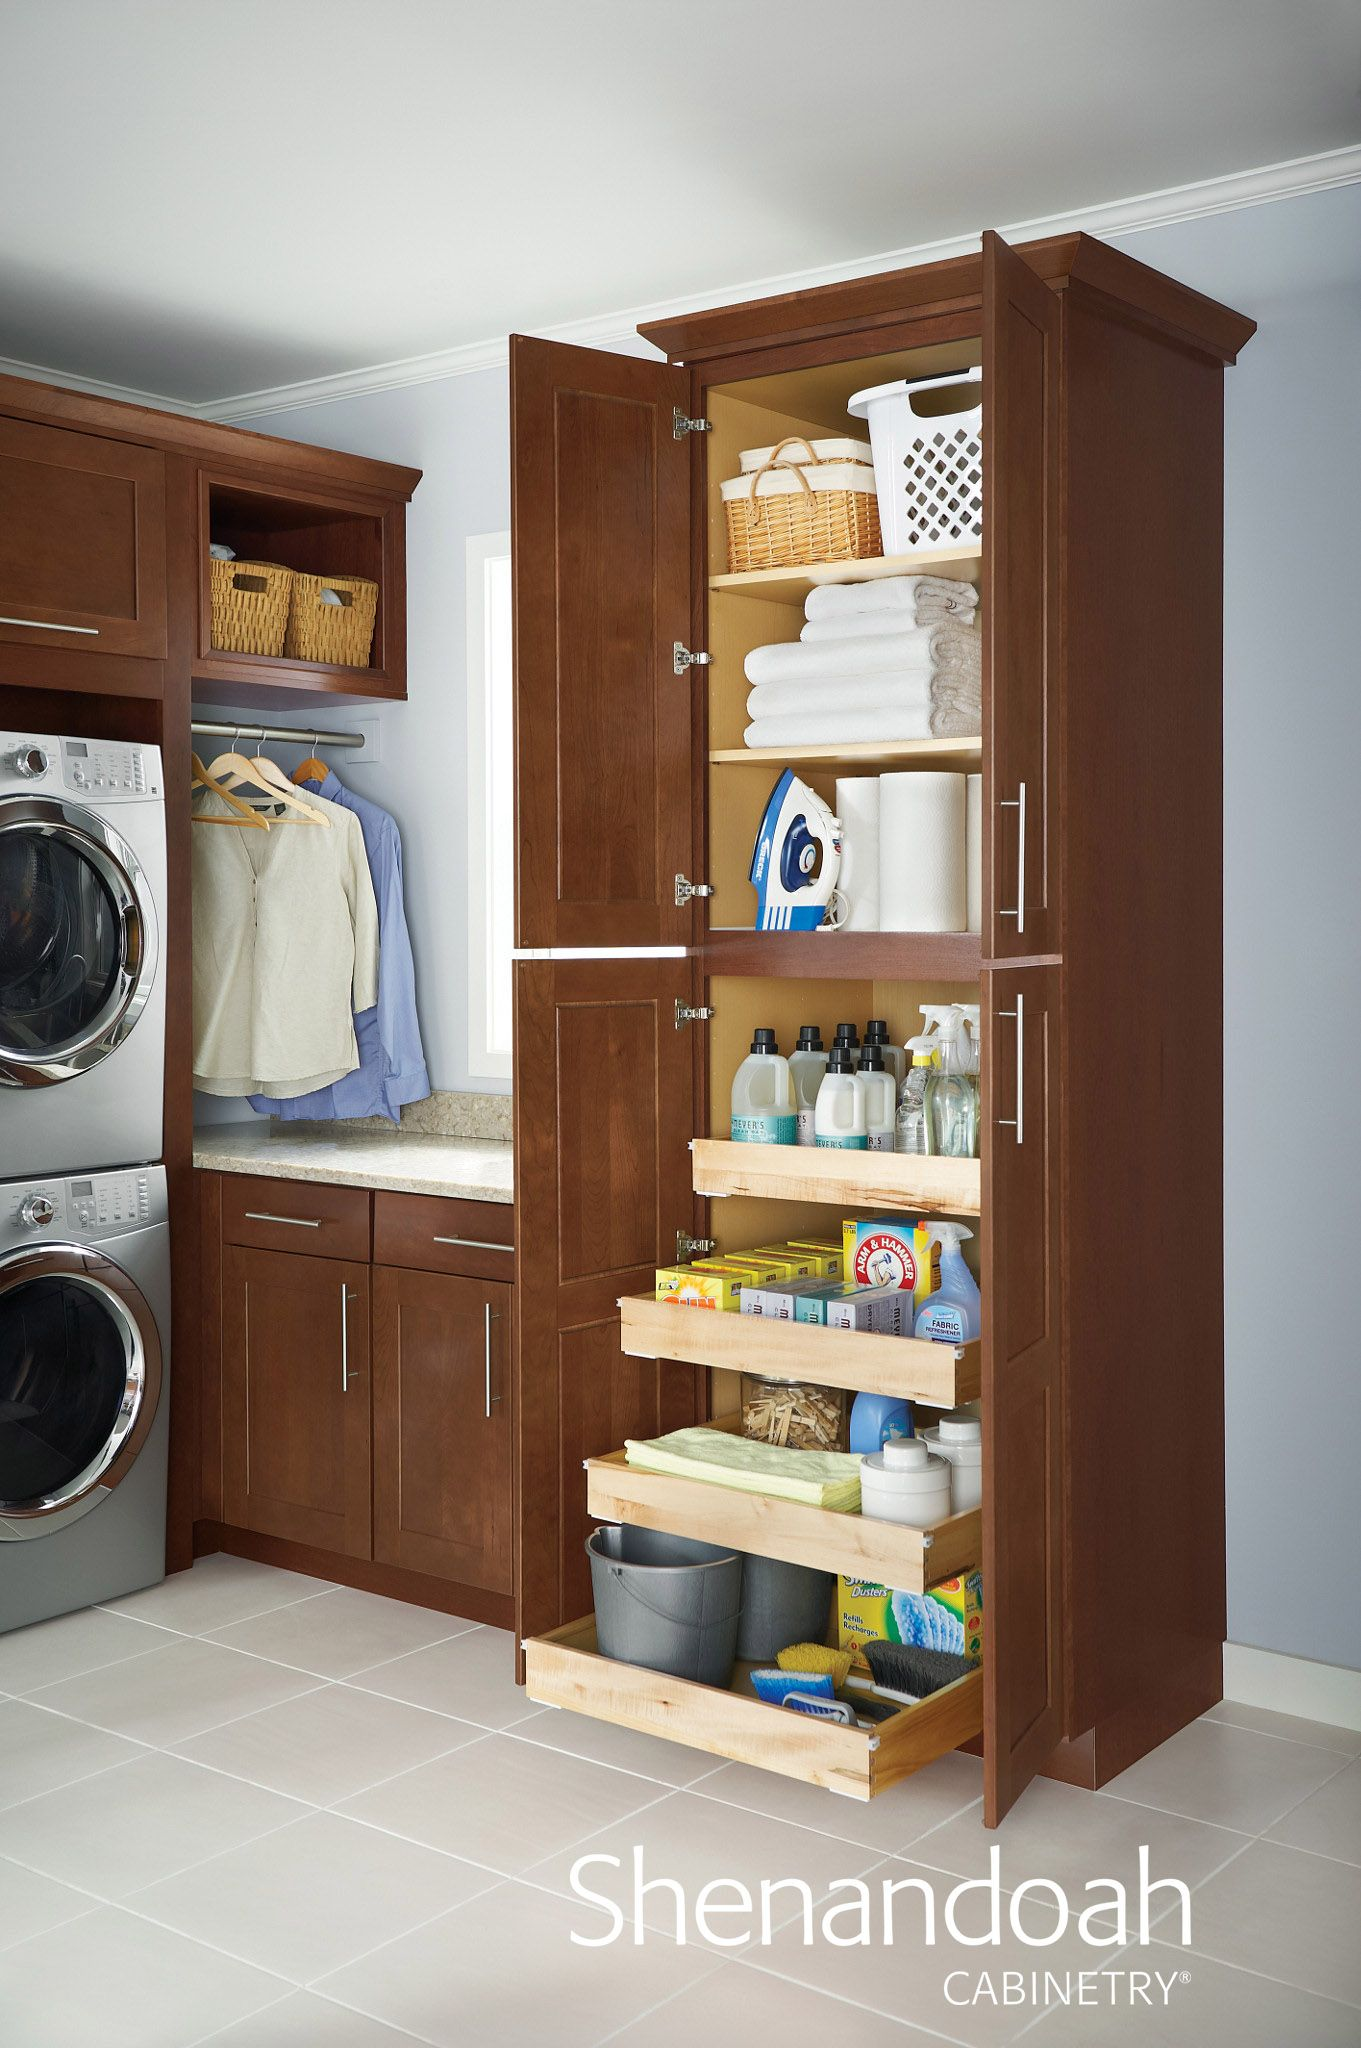 Pin By Shenandoah Cabinetry On Laundry Room Diy Laundry Room